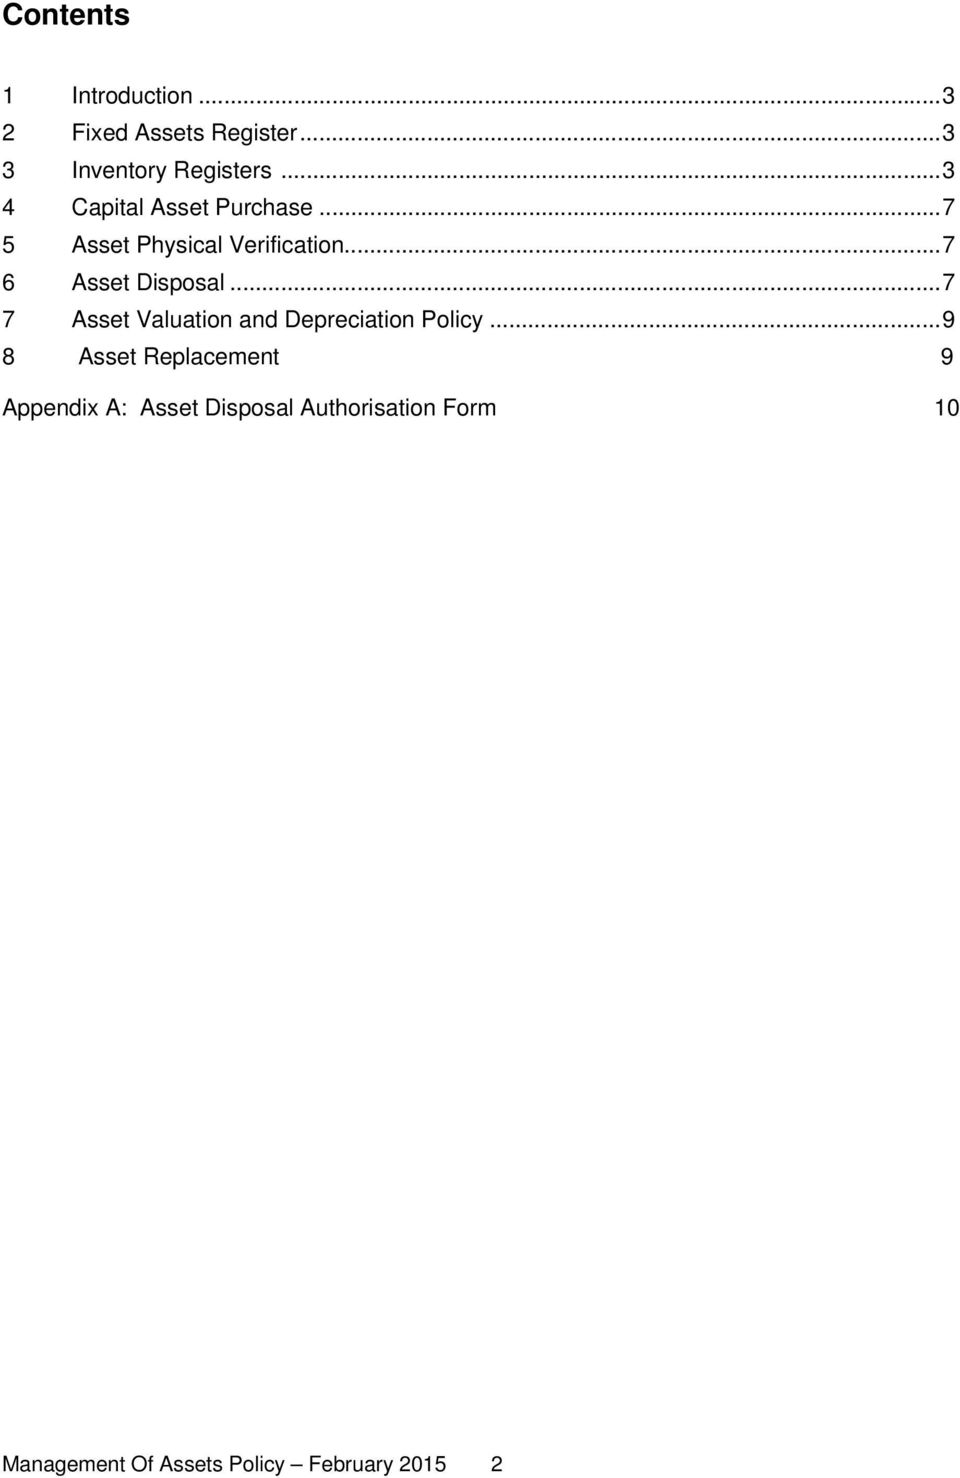 Management of Assets Policy - PDF